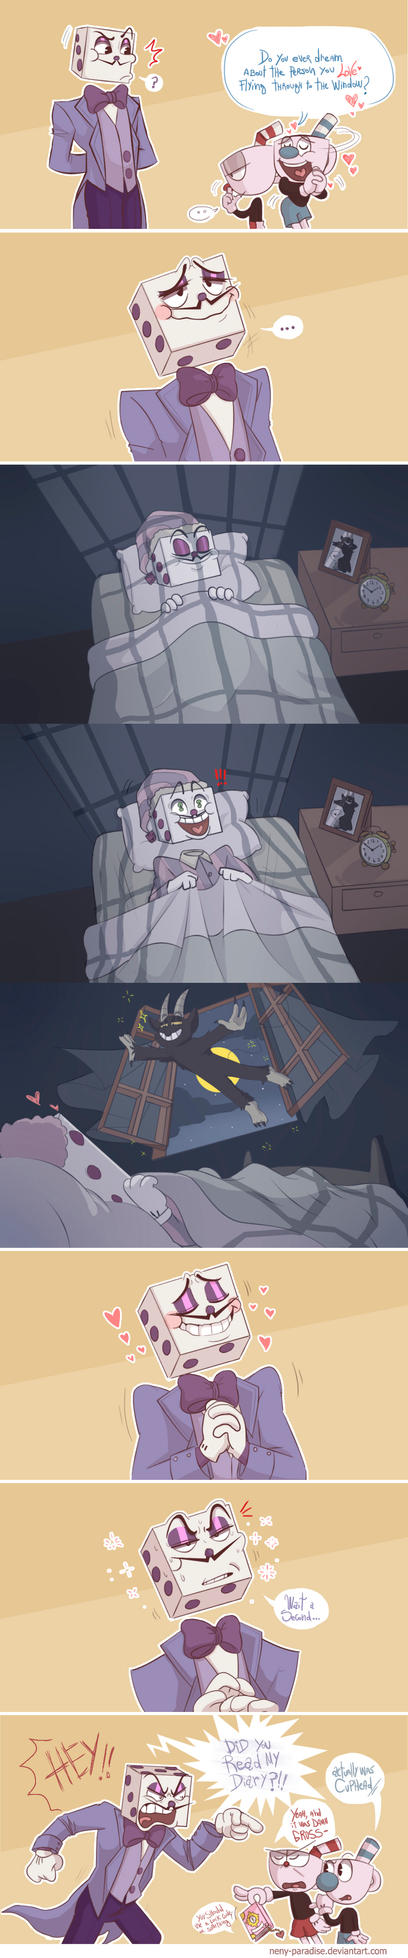 King Dice's Dream by Neny-Paradise